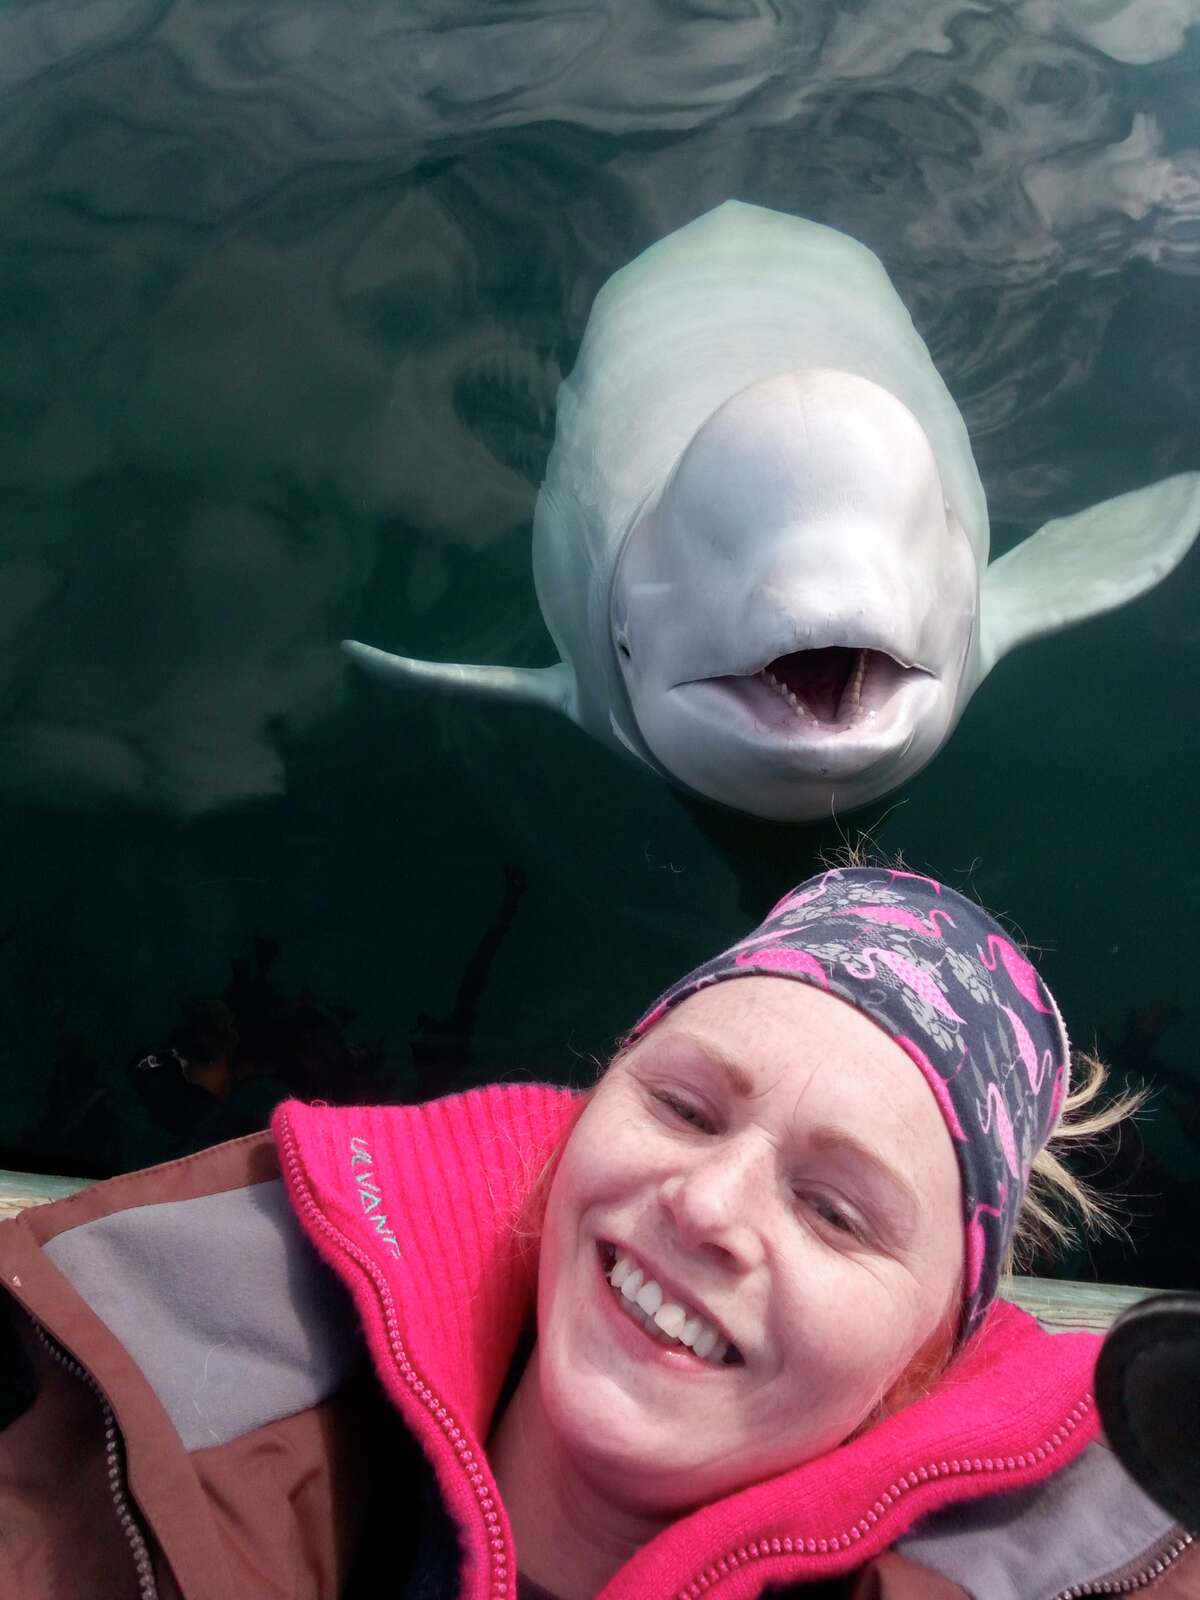 In this photo taken on Monday, April 29, 2019, Linn Saether poses with a beluga whale, days after a fisherman removed a harness with a mount for camera from the mammal, in Tufjord, Norway. A beluga whale found in Arctic Norway with a tight harness that is believed to have links to a military facility in Russia is so tame that it allows locals to pet the mammal on its nose, resident Linn Saether said Tuesday. The white whale has been frolicking in the frigid harbor of Tufjord, a hamlet near Norway's northernmost point, and has become a local attraction. (Linn Saether via AP)